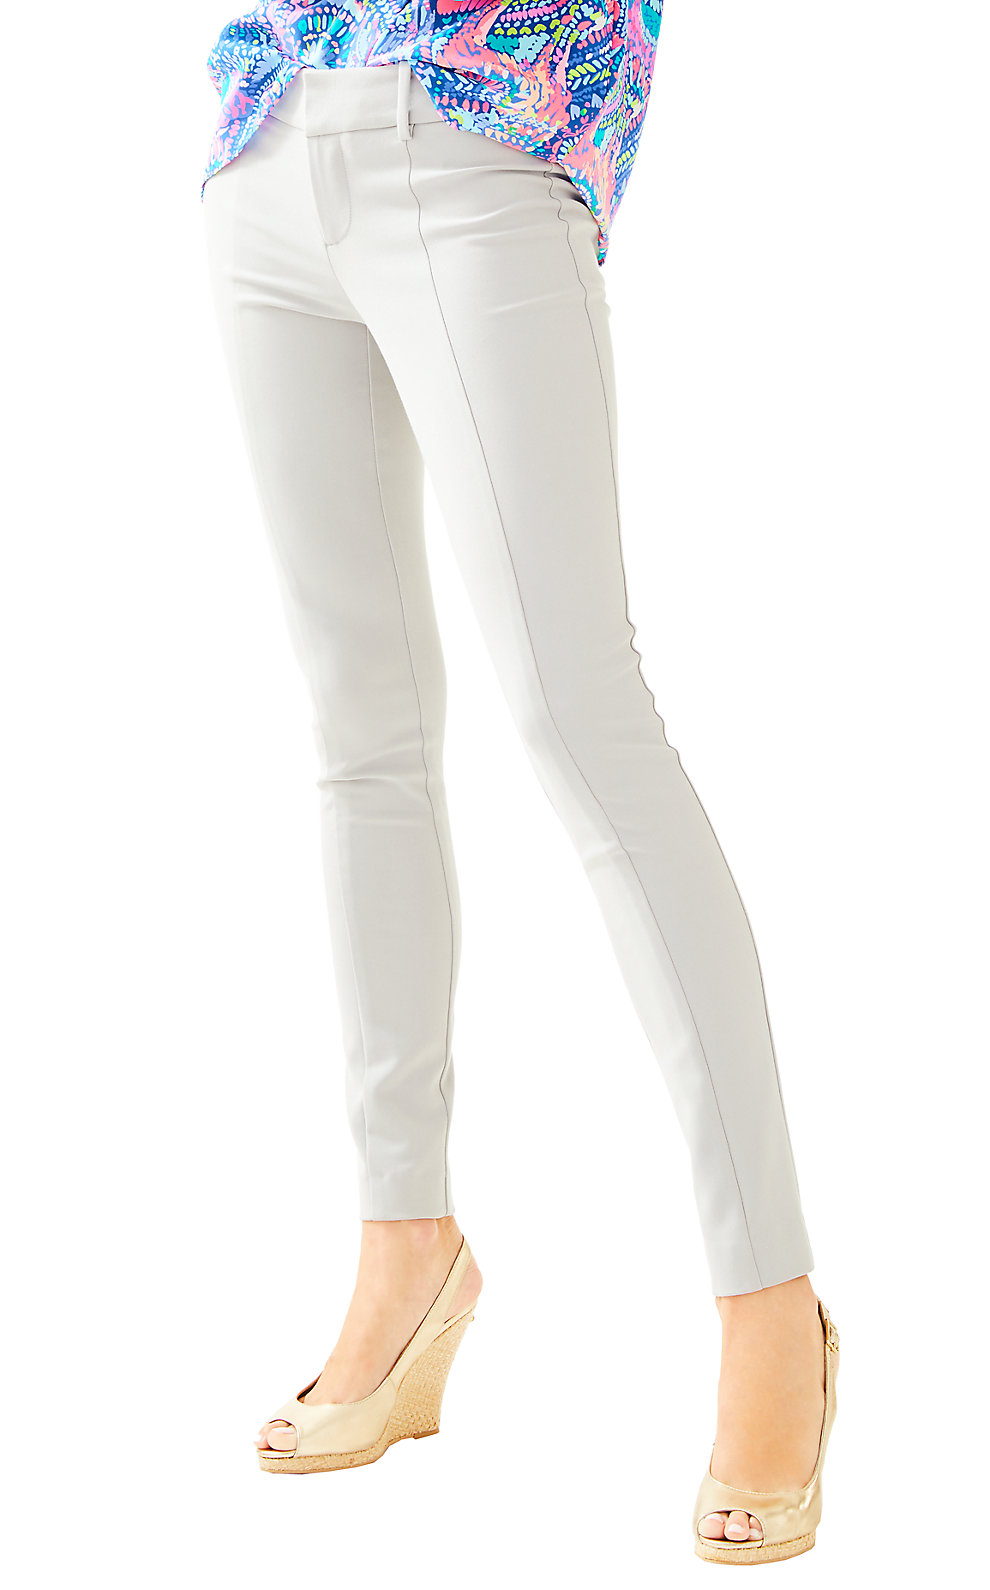 Lilly Pulitzer Chantal Stretch Dinner Pant